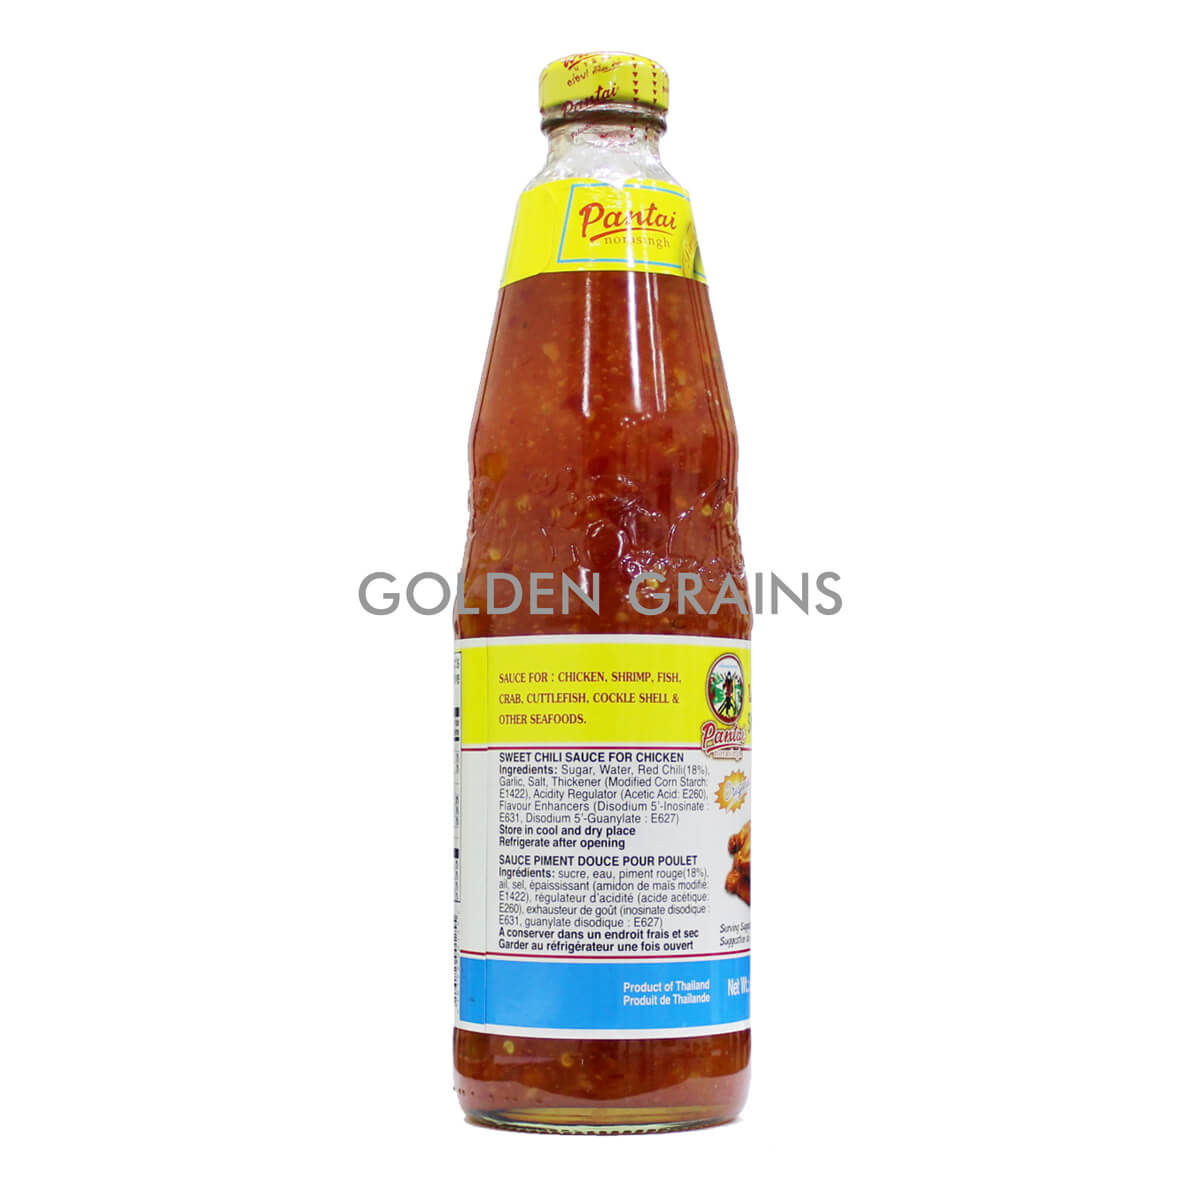 Golden Grains Pantai - Sweet Chili Sauce Bottle - Back.jpg